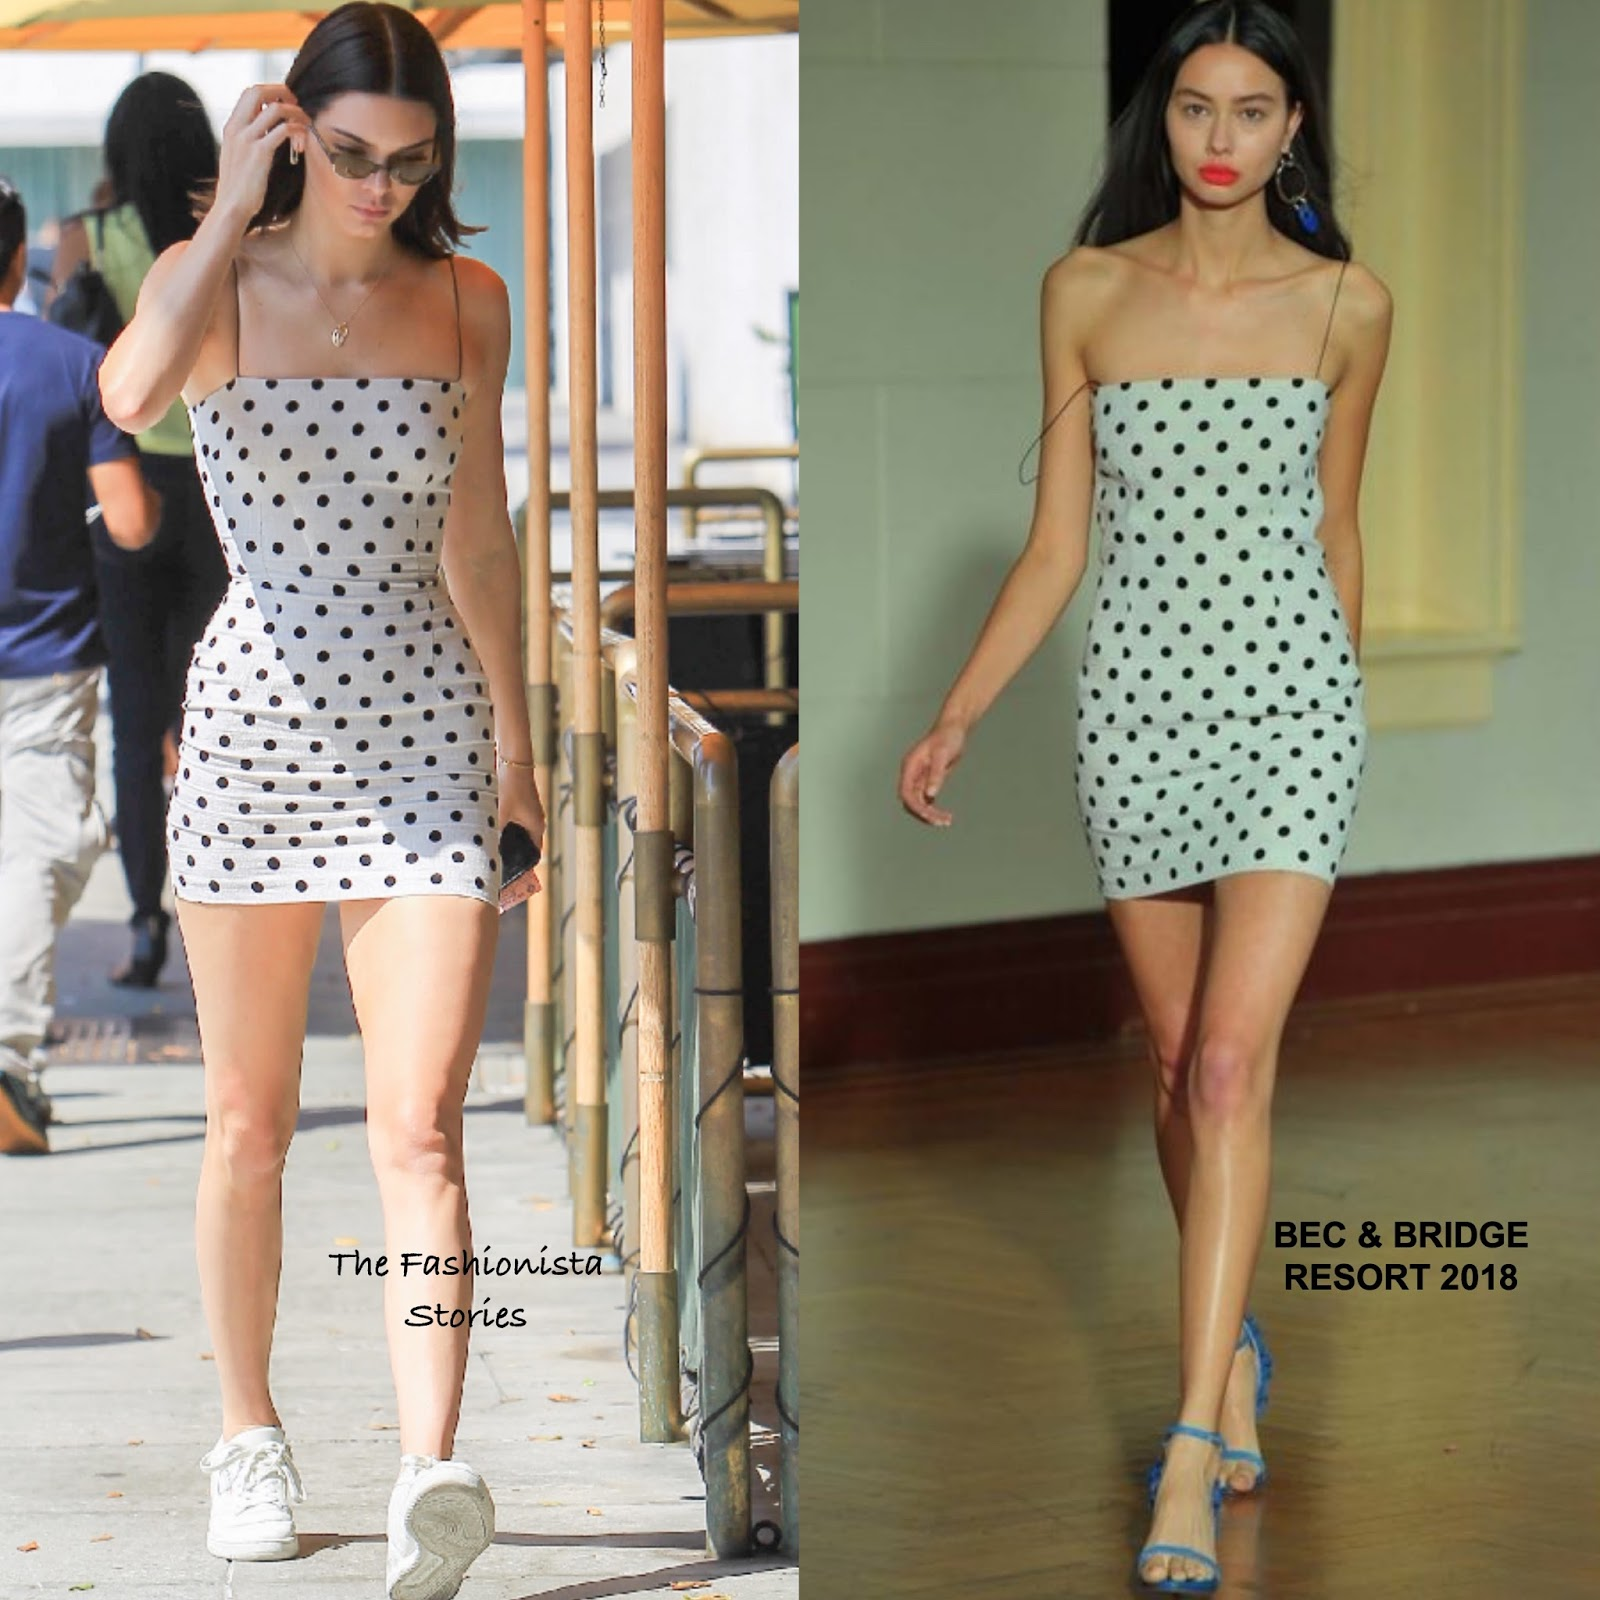 Kendall Jenner In Bec Bridge Out Beverly Hills